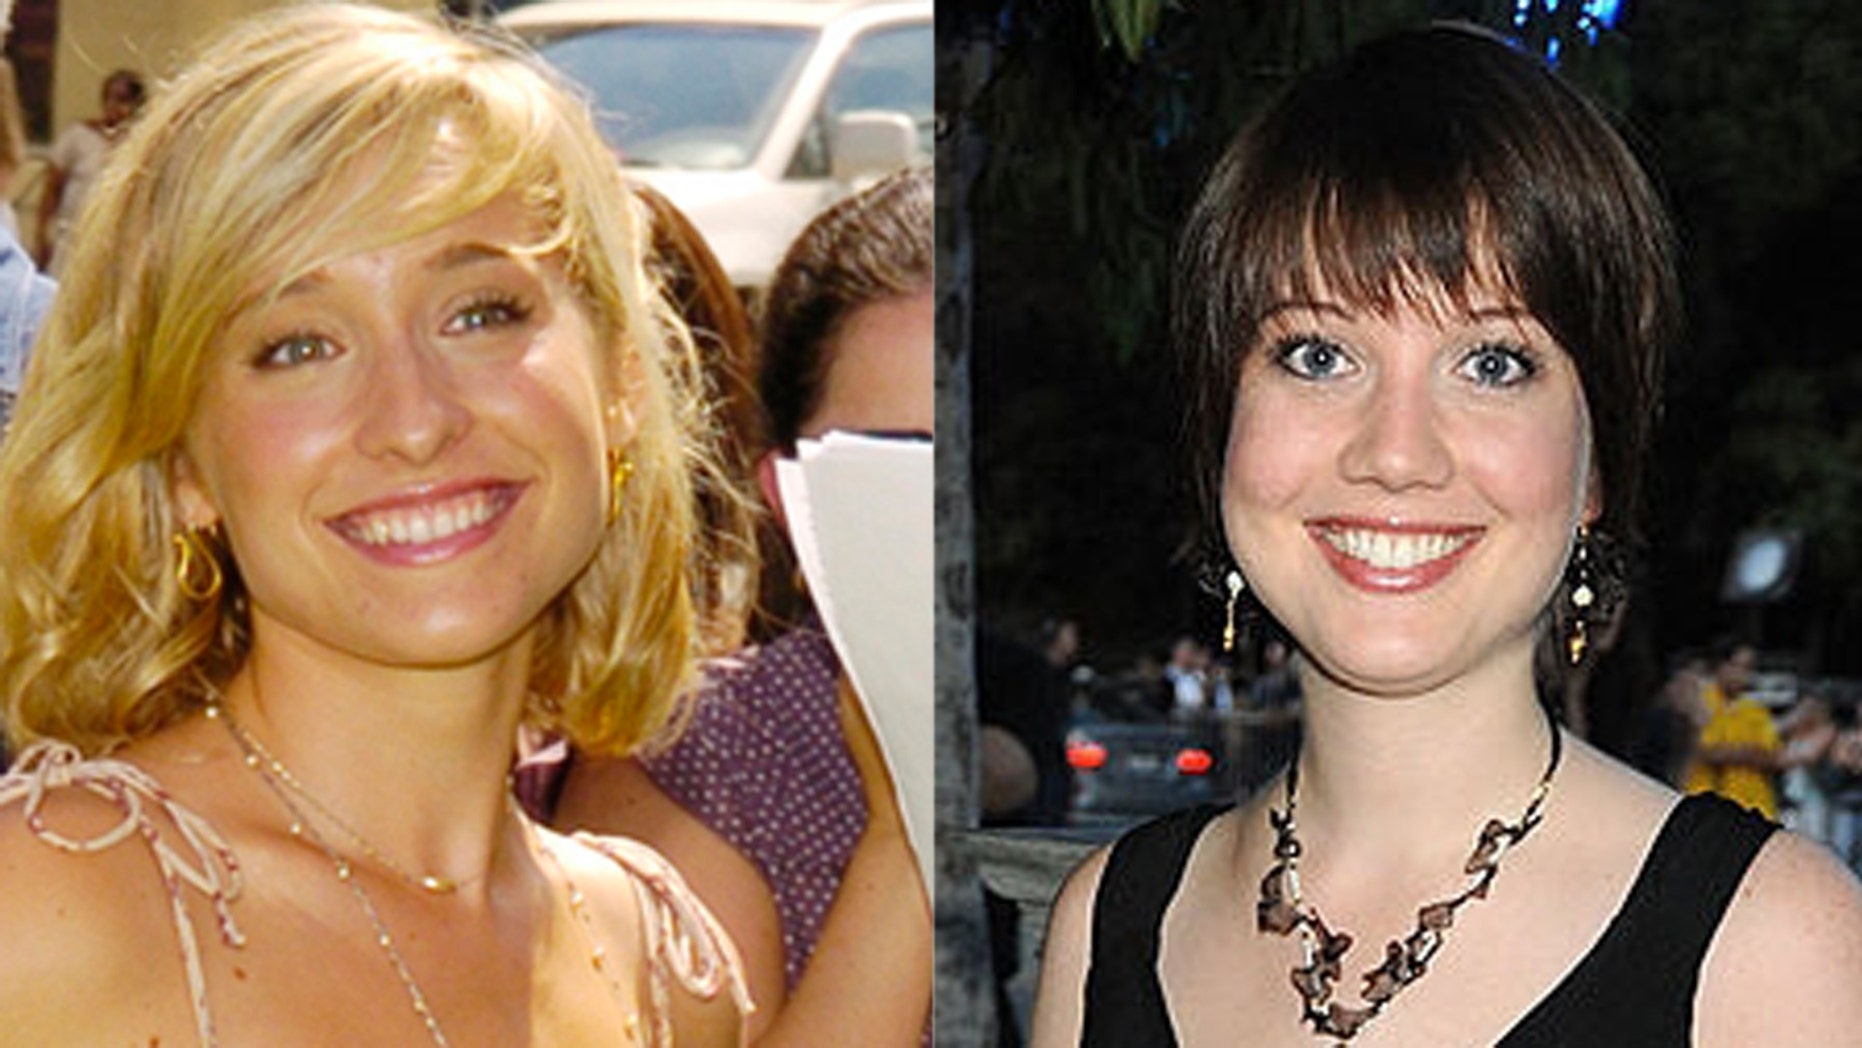 Allison Mack (L) and Nicki Clyne (R) allegedly married each other on the orders of Keith Raniere.